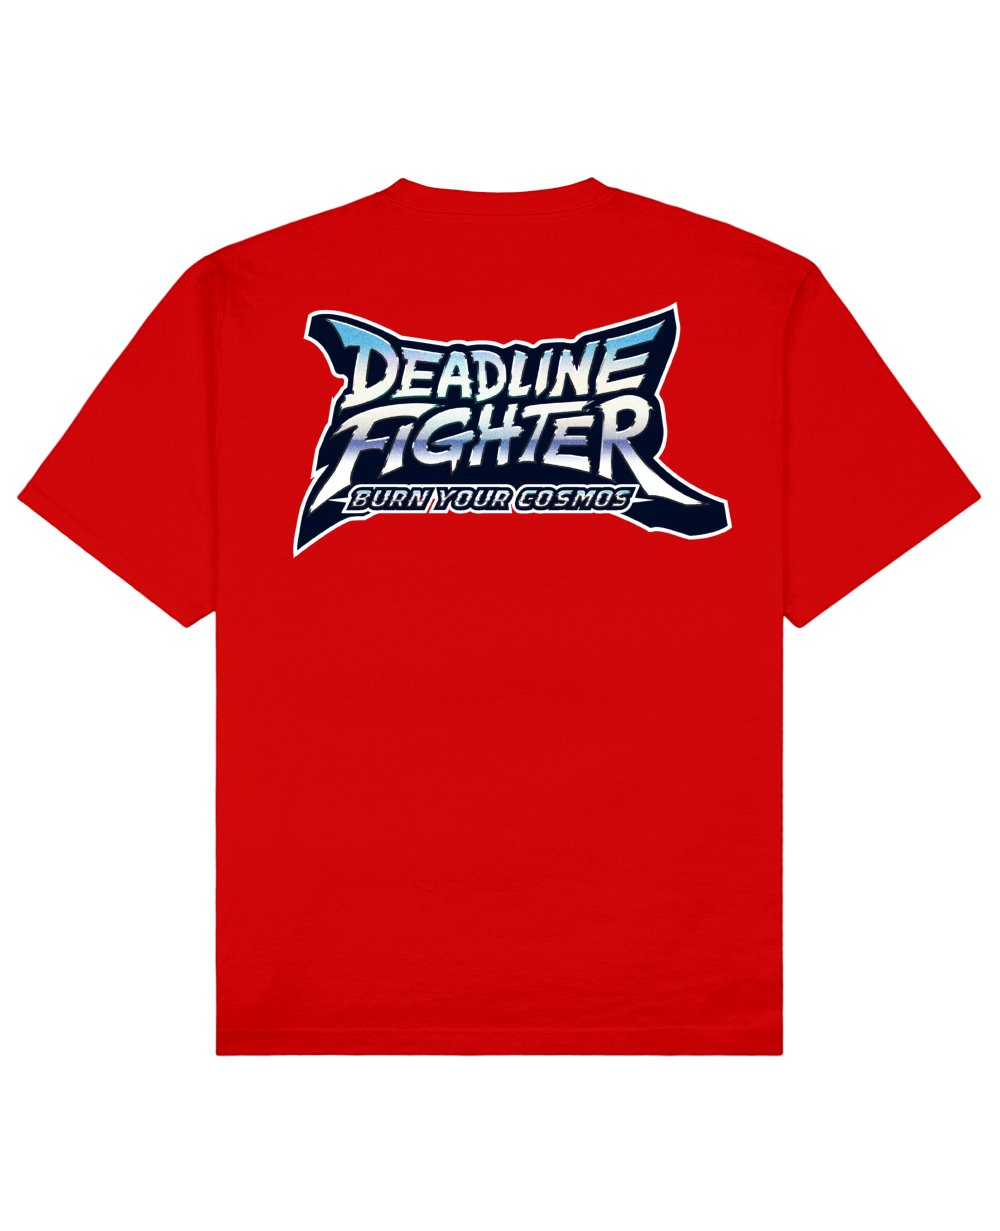 Deadline Fighter Print T-Shirt in Red - T-Shirts - PSV - BRANMA